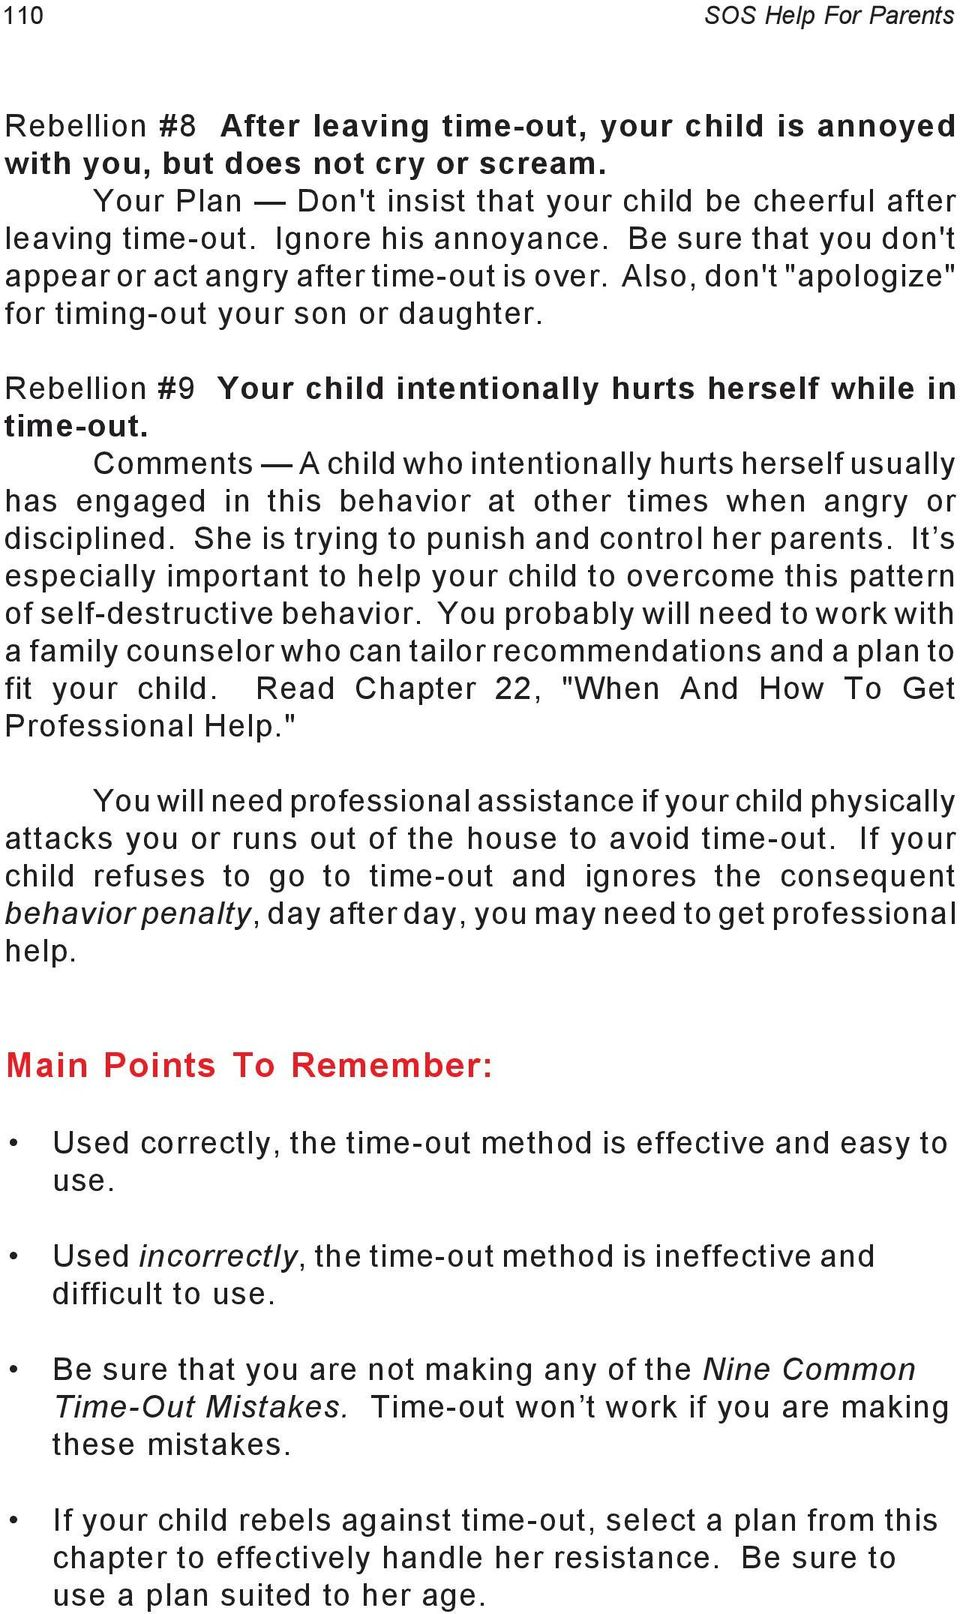 Rebellion #9 Your child intentionally hurts herself while in time-out. Comments A child who intentionally hurts herself usually has engaged in this behavior at other times when angry or disciplined.